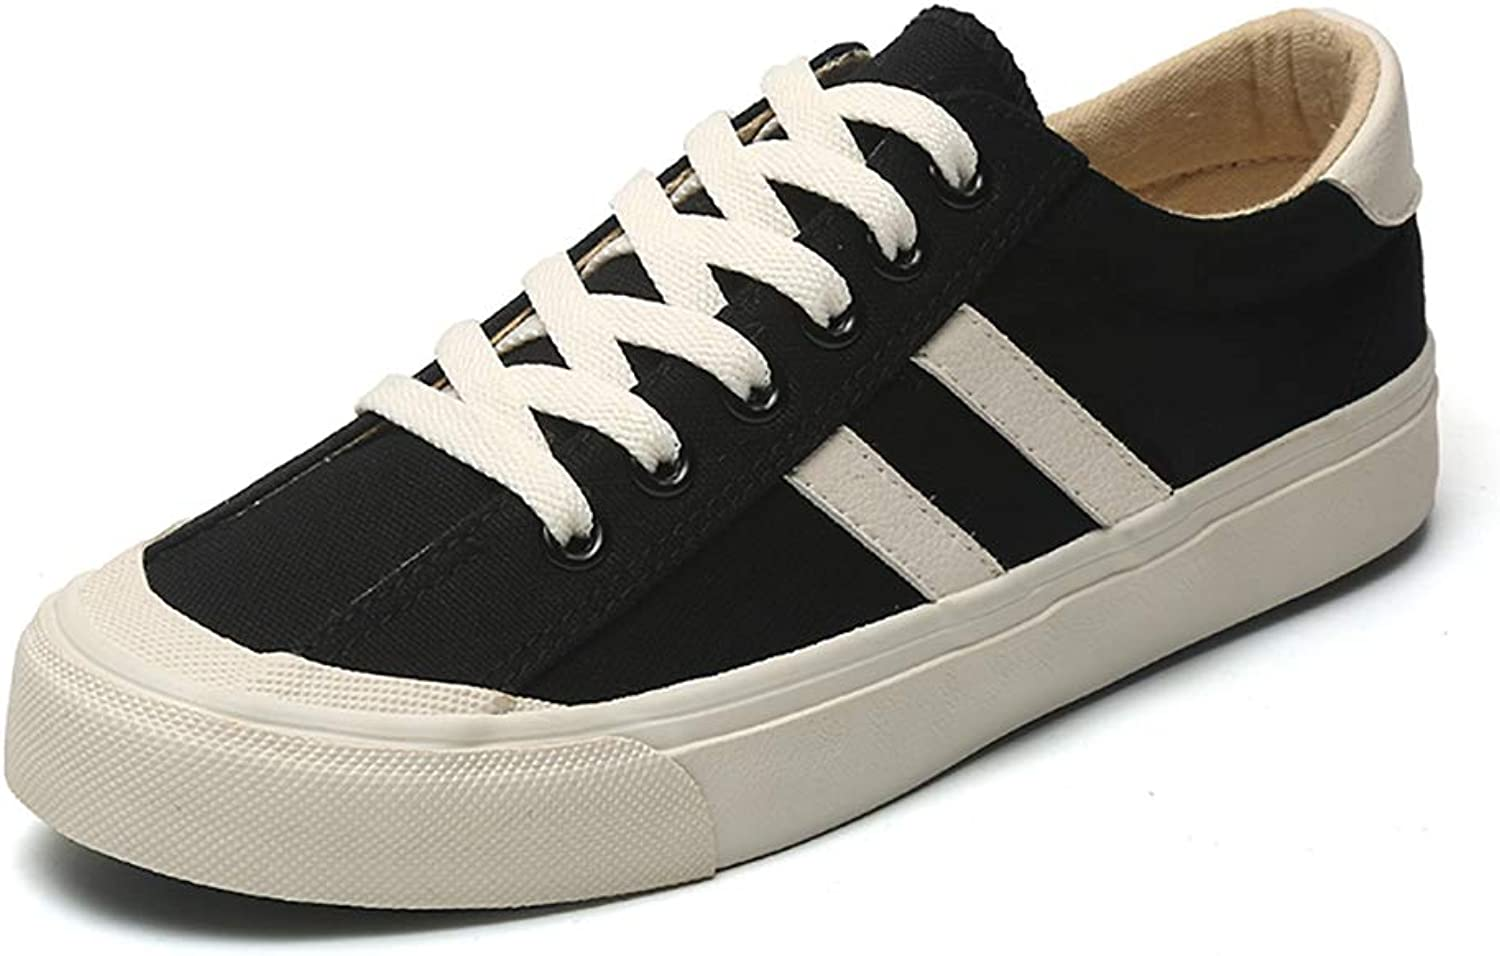 Women's Canvas Low-top Sneaker Casual Lace up Fashion Comfortable for Walking,Black,36